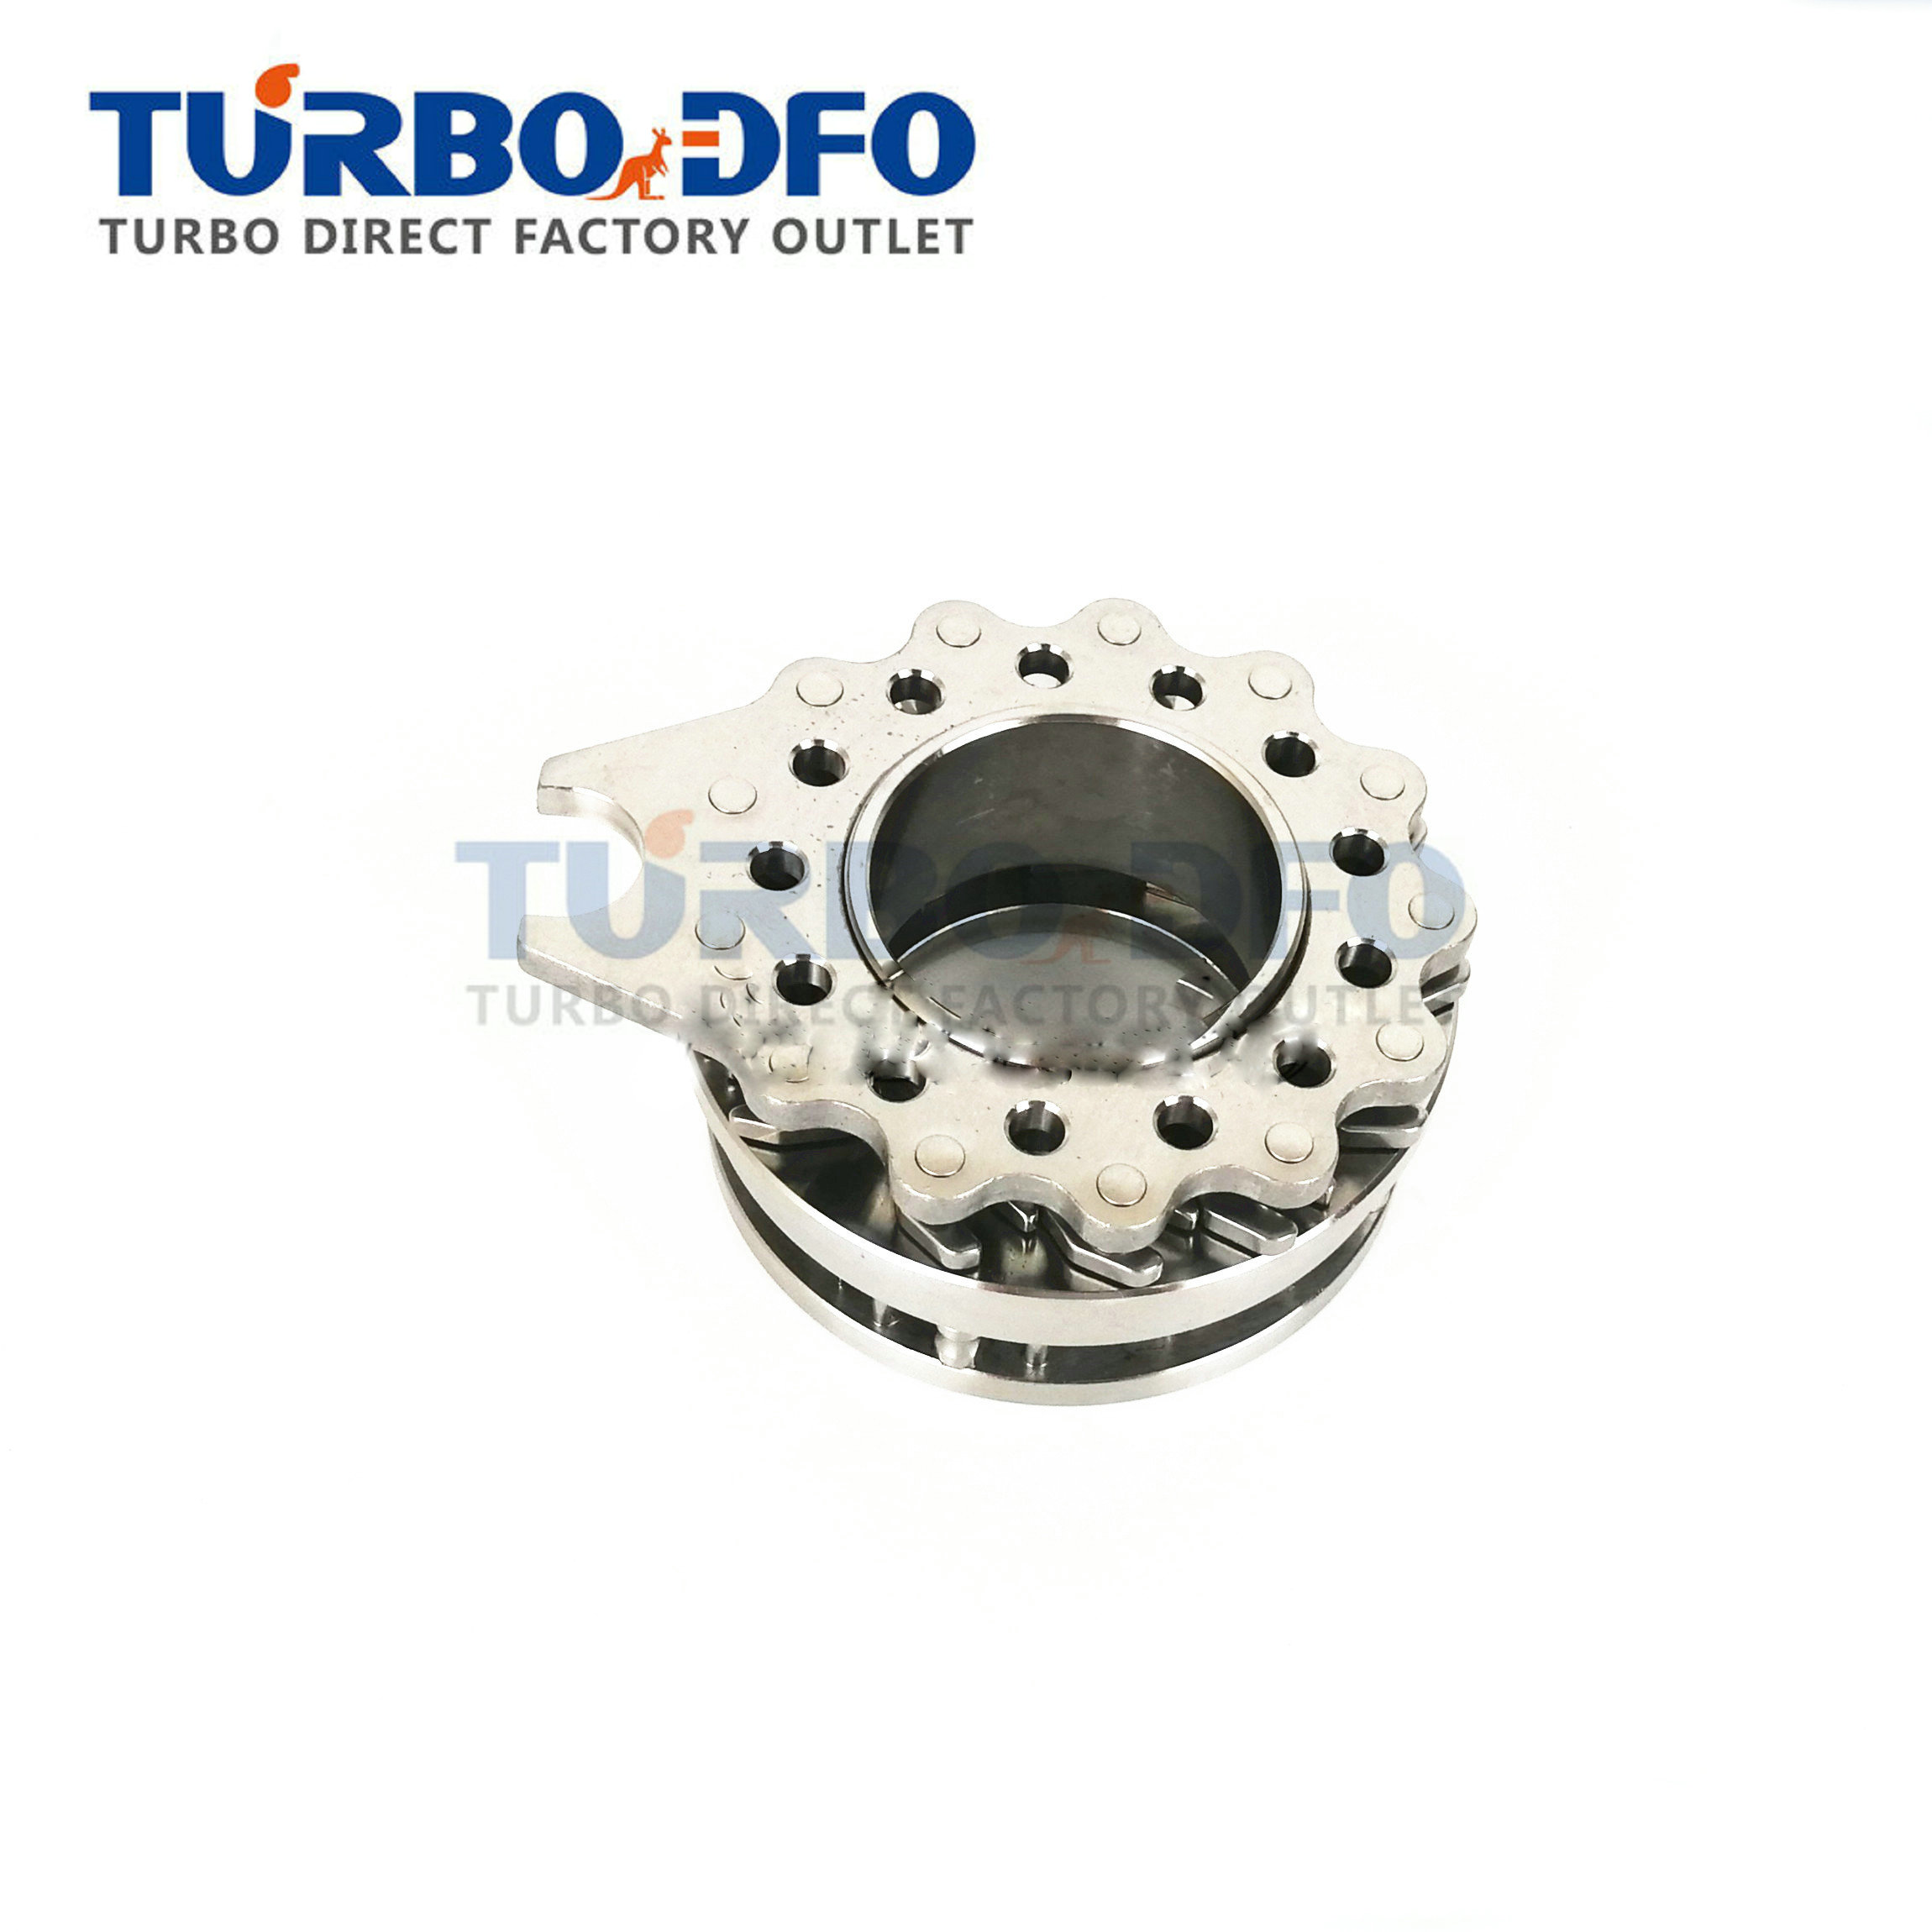 Turbocharger TD03L 49131-06007 49131-06007 VNT Ring 860070 860128 860147 For Opel Astra H 1.7 CDTI Z17DTH 2004- Nozzle Ring